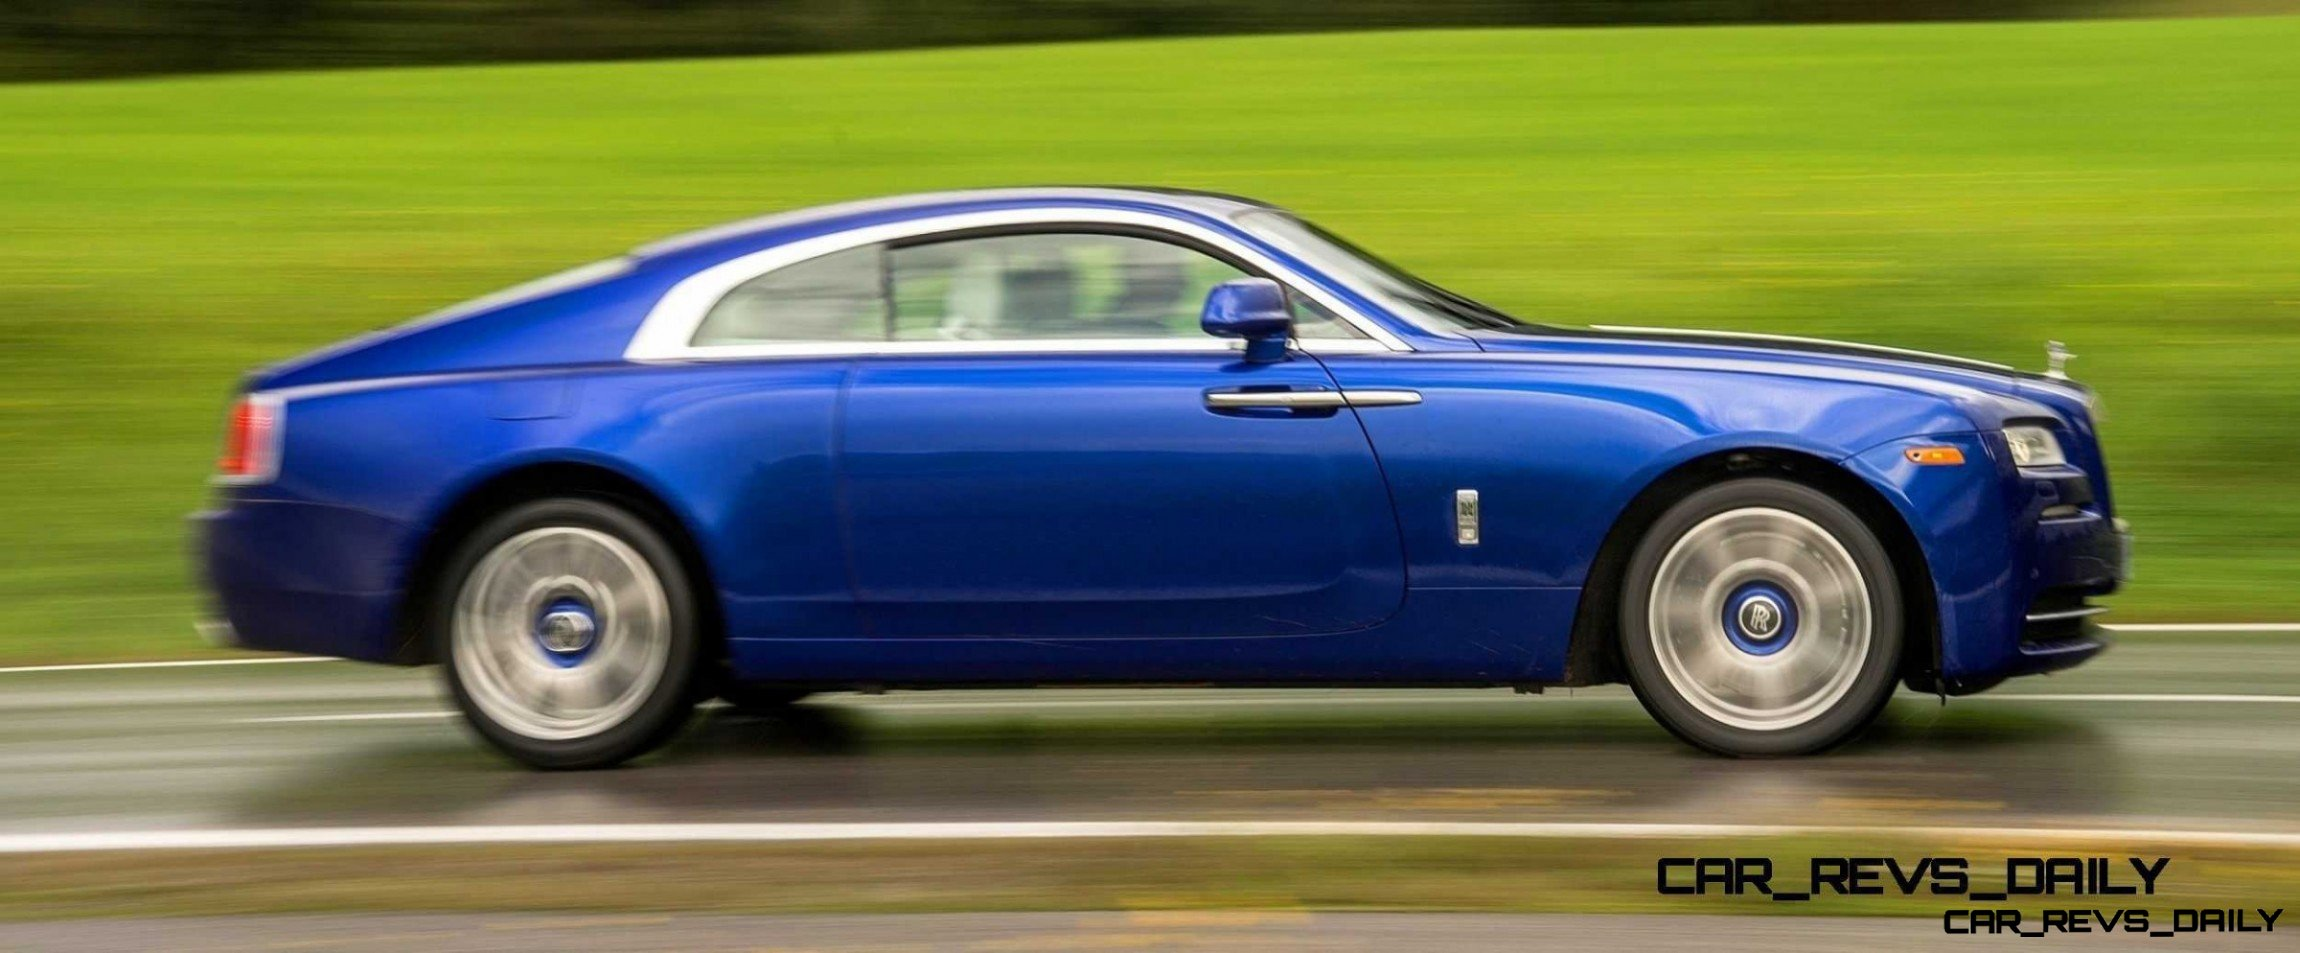 Rolls-Royce Wraith - Color Showcase - Salamanca Blue33